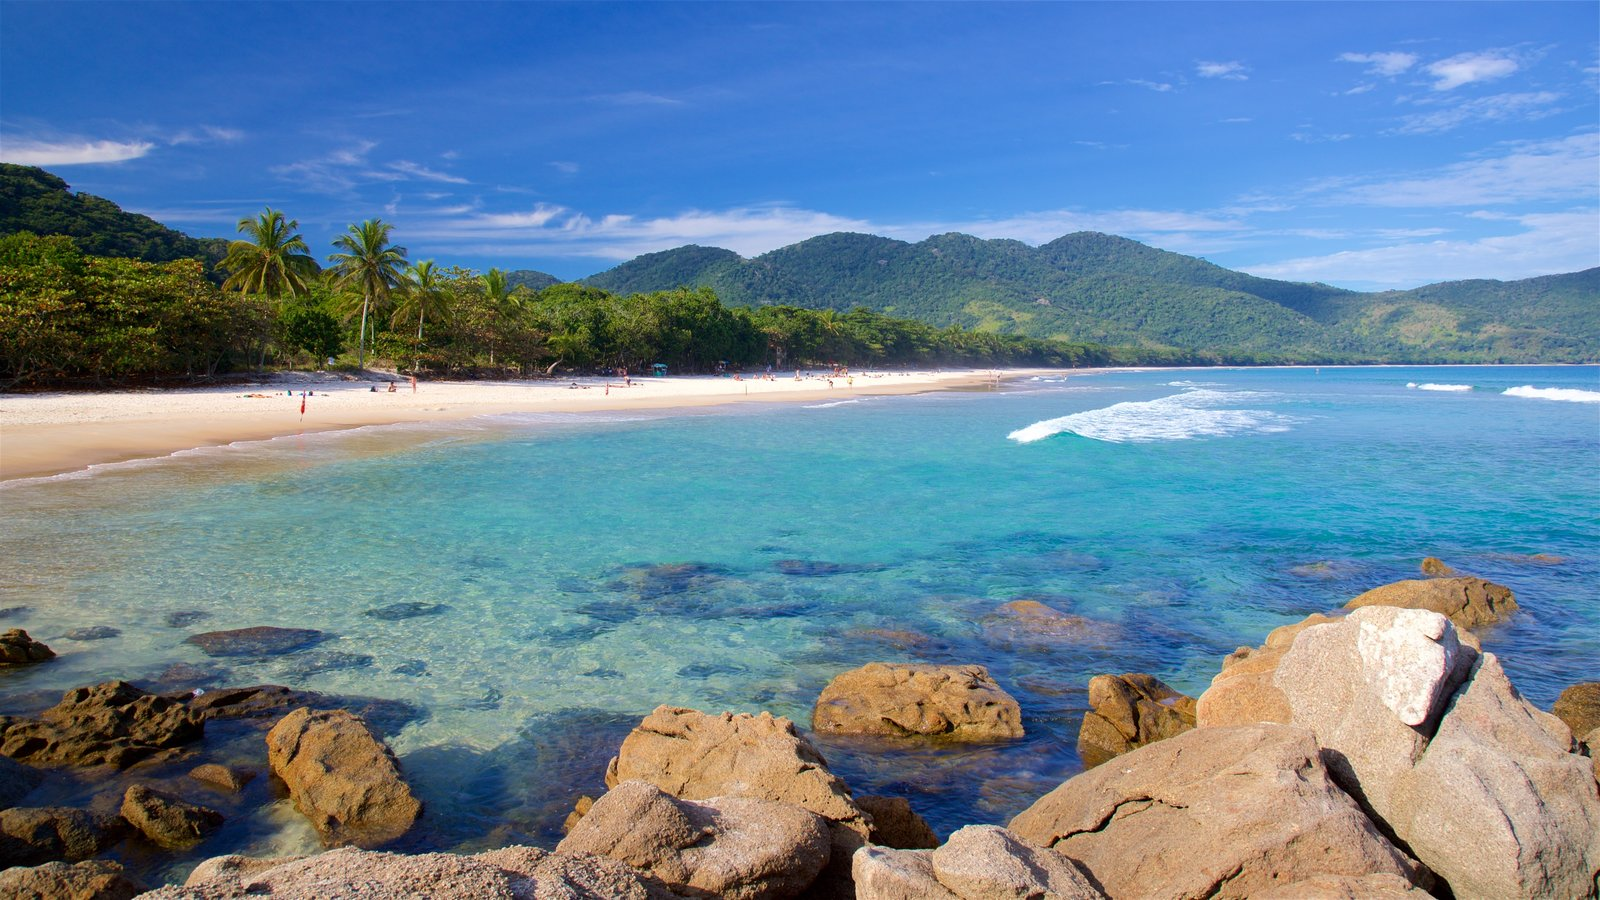 Lopes Mendes Beach featuring a beach, rocky coastline and tropical scenes